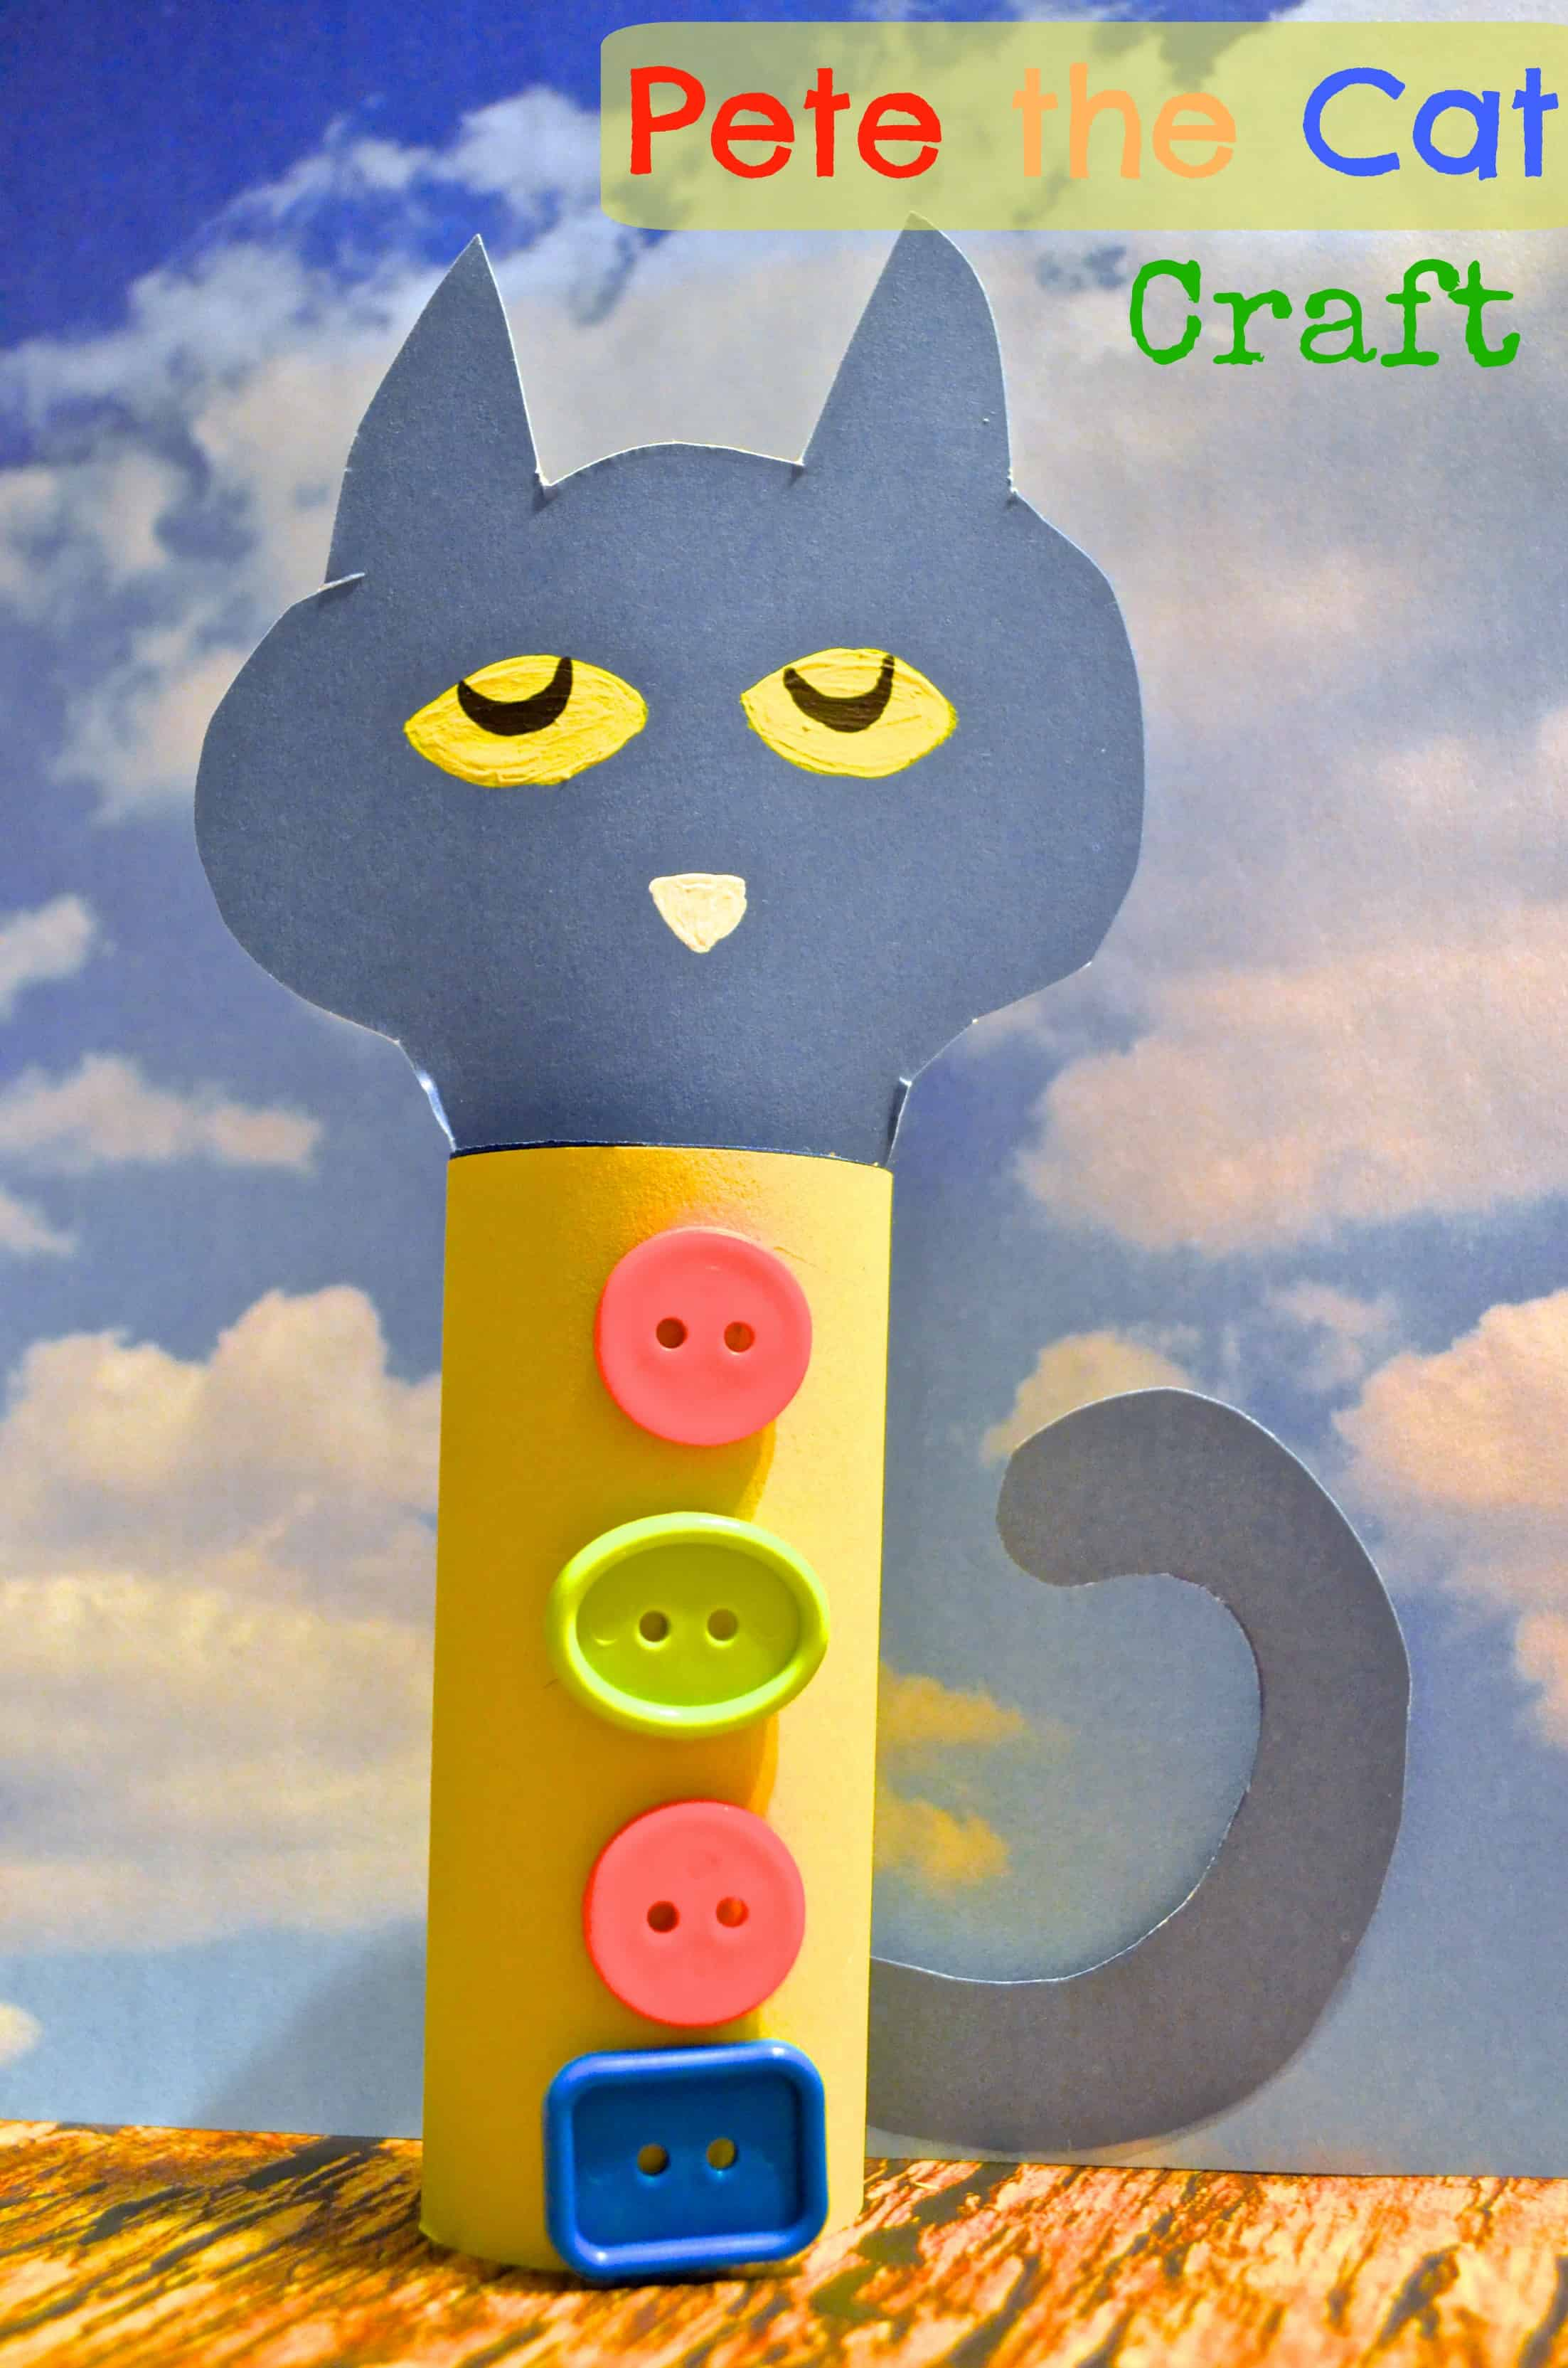 The cat toilet paper tube craft for kids pete the cat toilet paper tube craft for kids jeuxipadfo Images